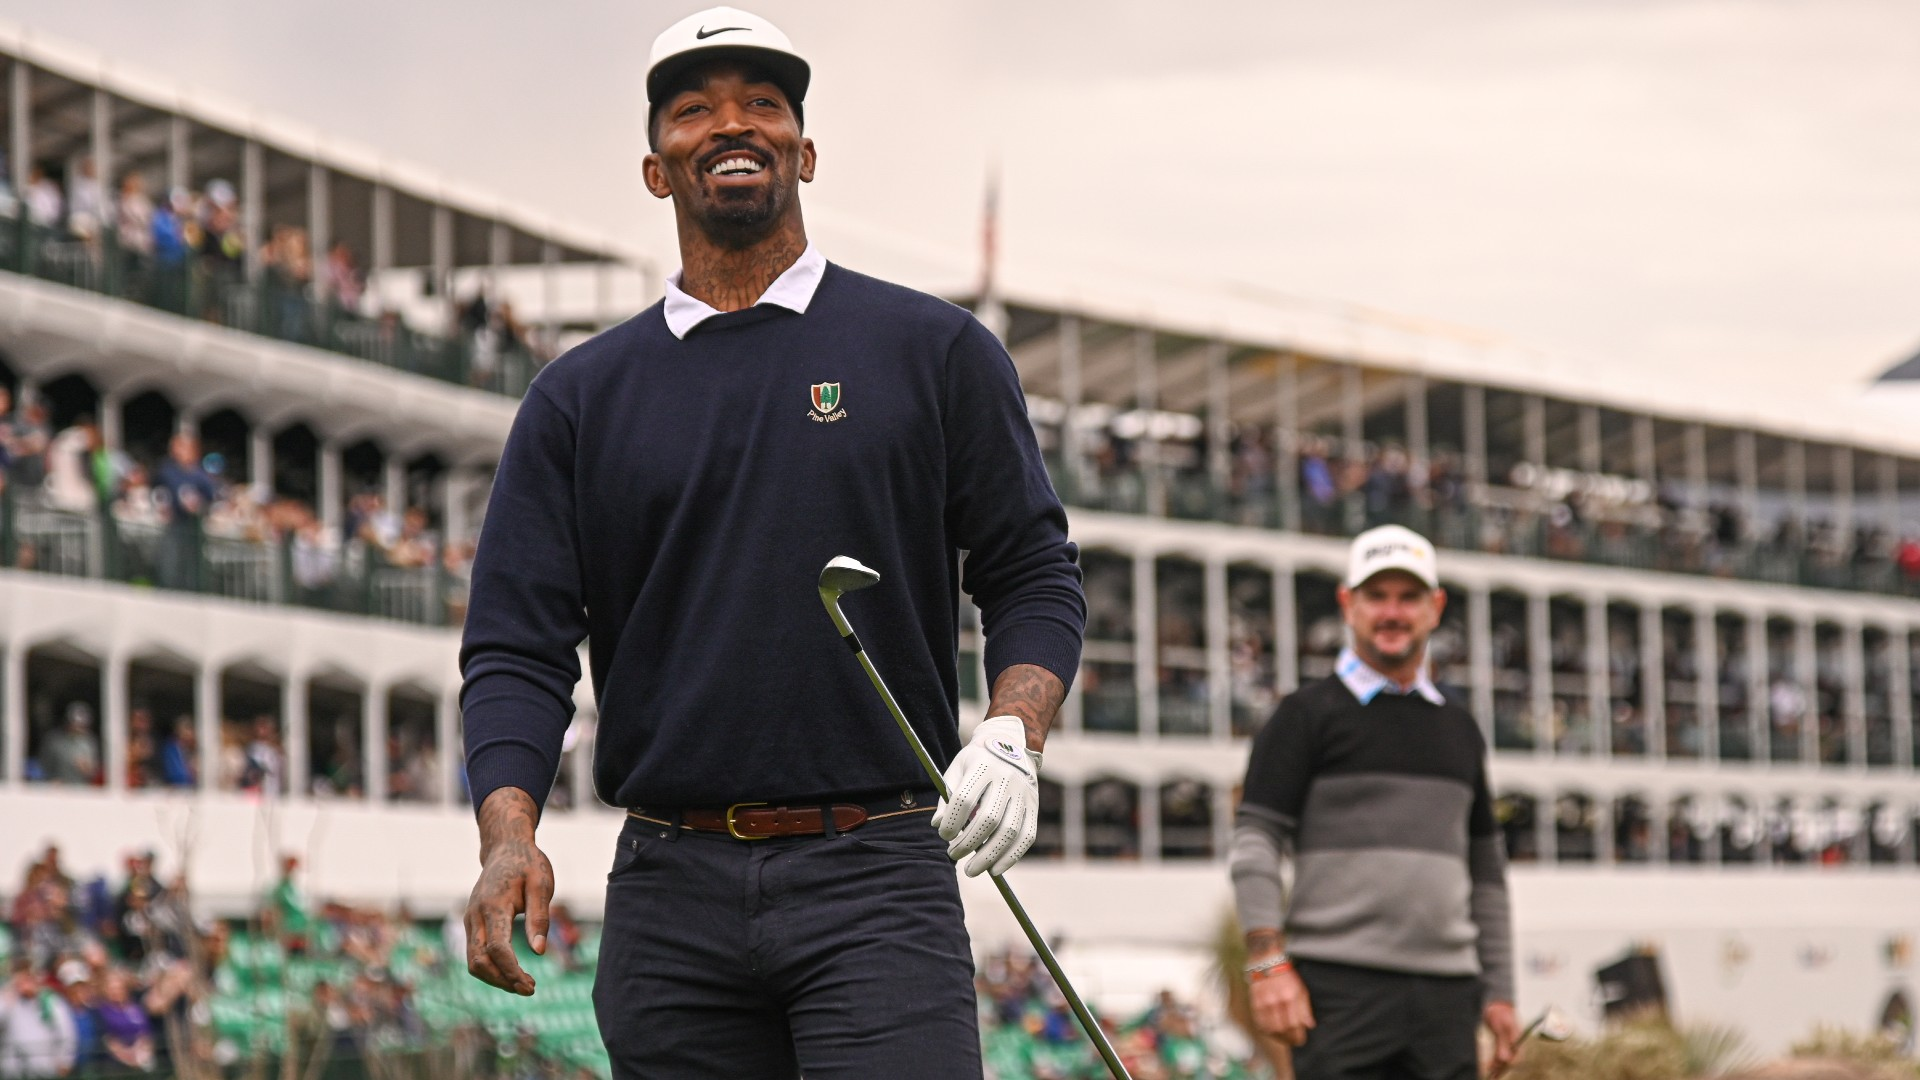 J.R. Smith, a former NBA champion, has been ruled ineligible by the NCAA. 'It's a terrific feeling,' Smith says of being eligible to play college golf.